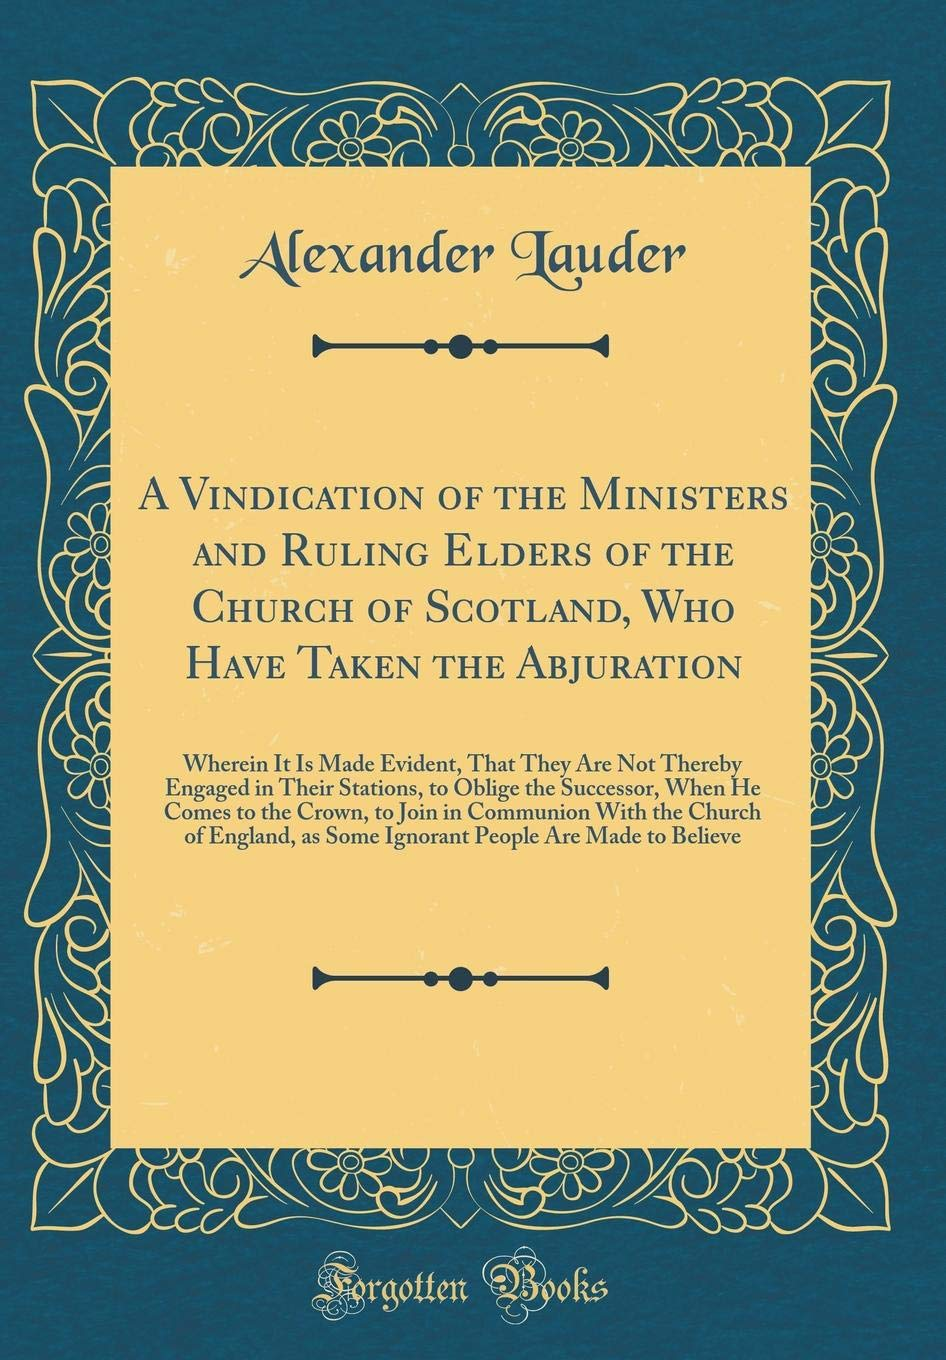 Read Online A Vindication of the Ministers and Ruling Elders of the Church of Scotland, Who Have Taken the Abjuration: Wherein It Is Made Evident, That They Are ... When He Comes to the Crown, to Join in Com ebook